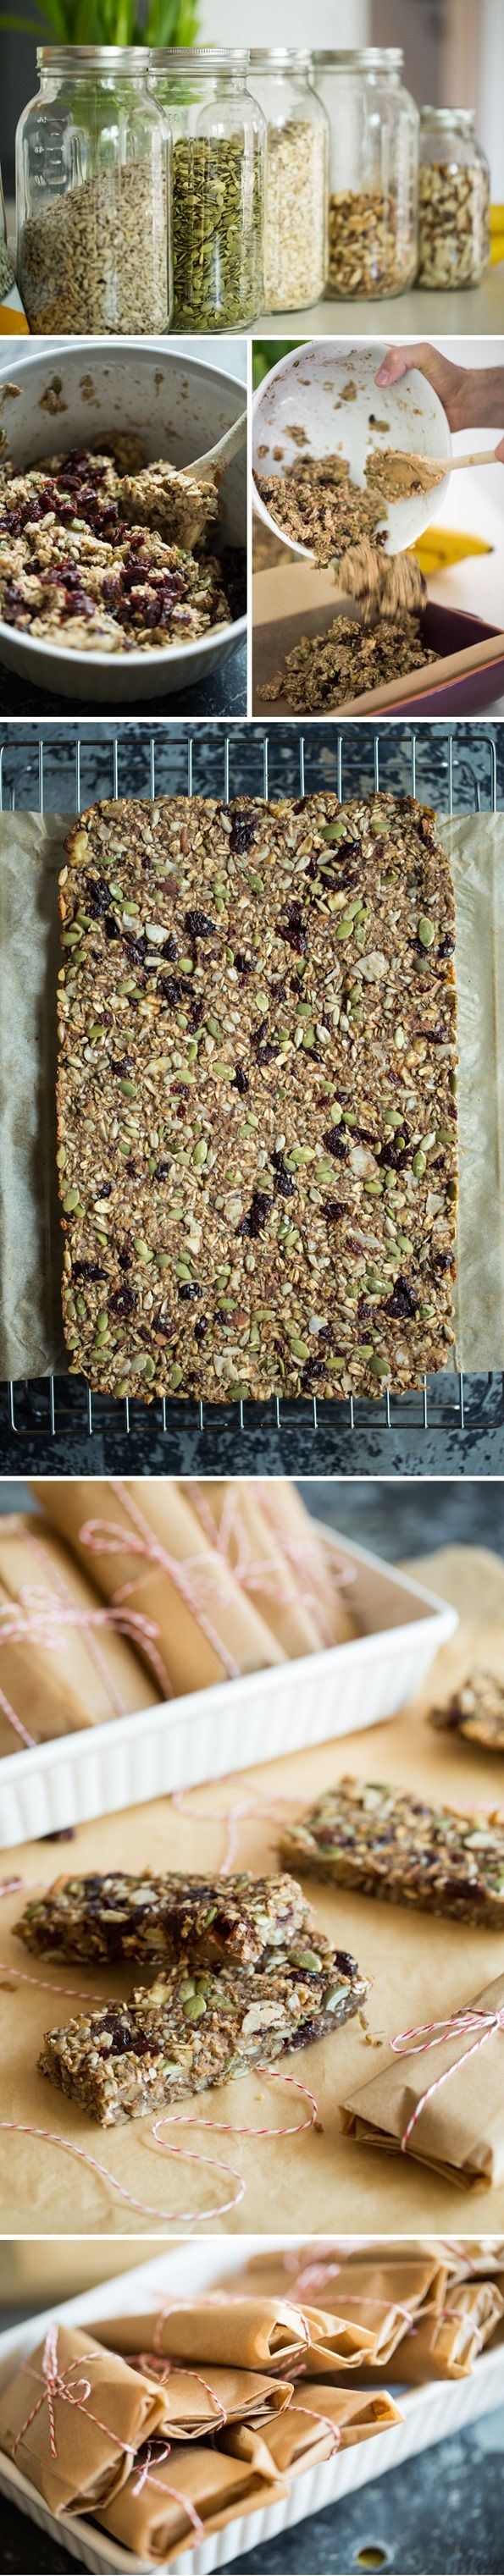 I'm in love with this Feel Good Heart Granola Bar recipe! Vegan, gluten-free, 6.6 grams of protein and almost 5 grams of fibre per bar. Great for on the go snacking. / Wholesome Foodie <3